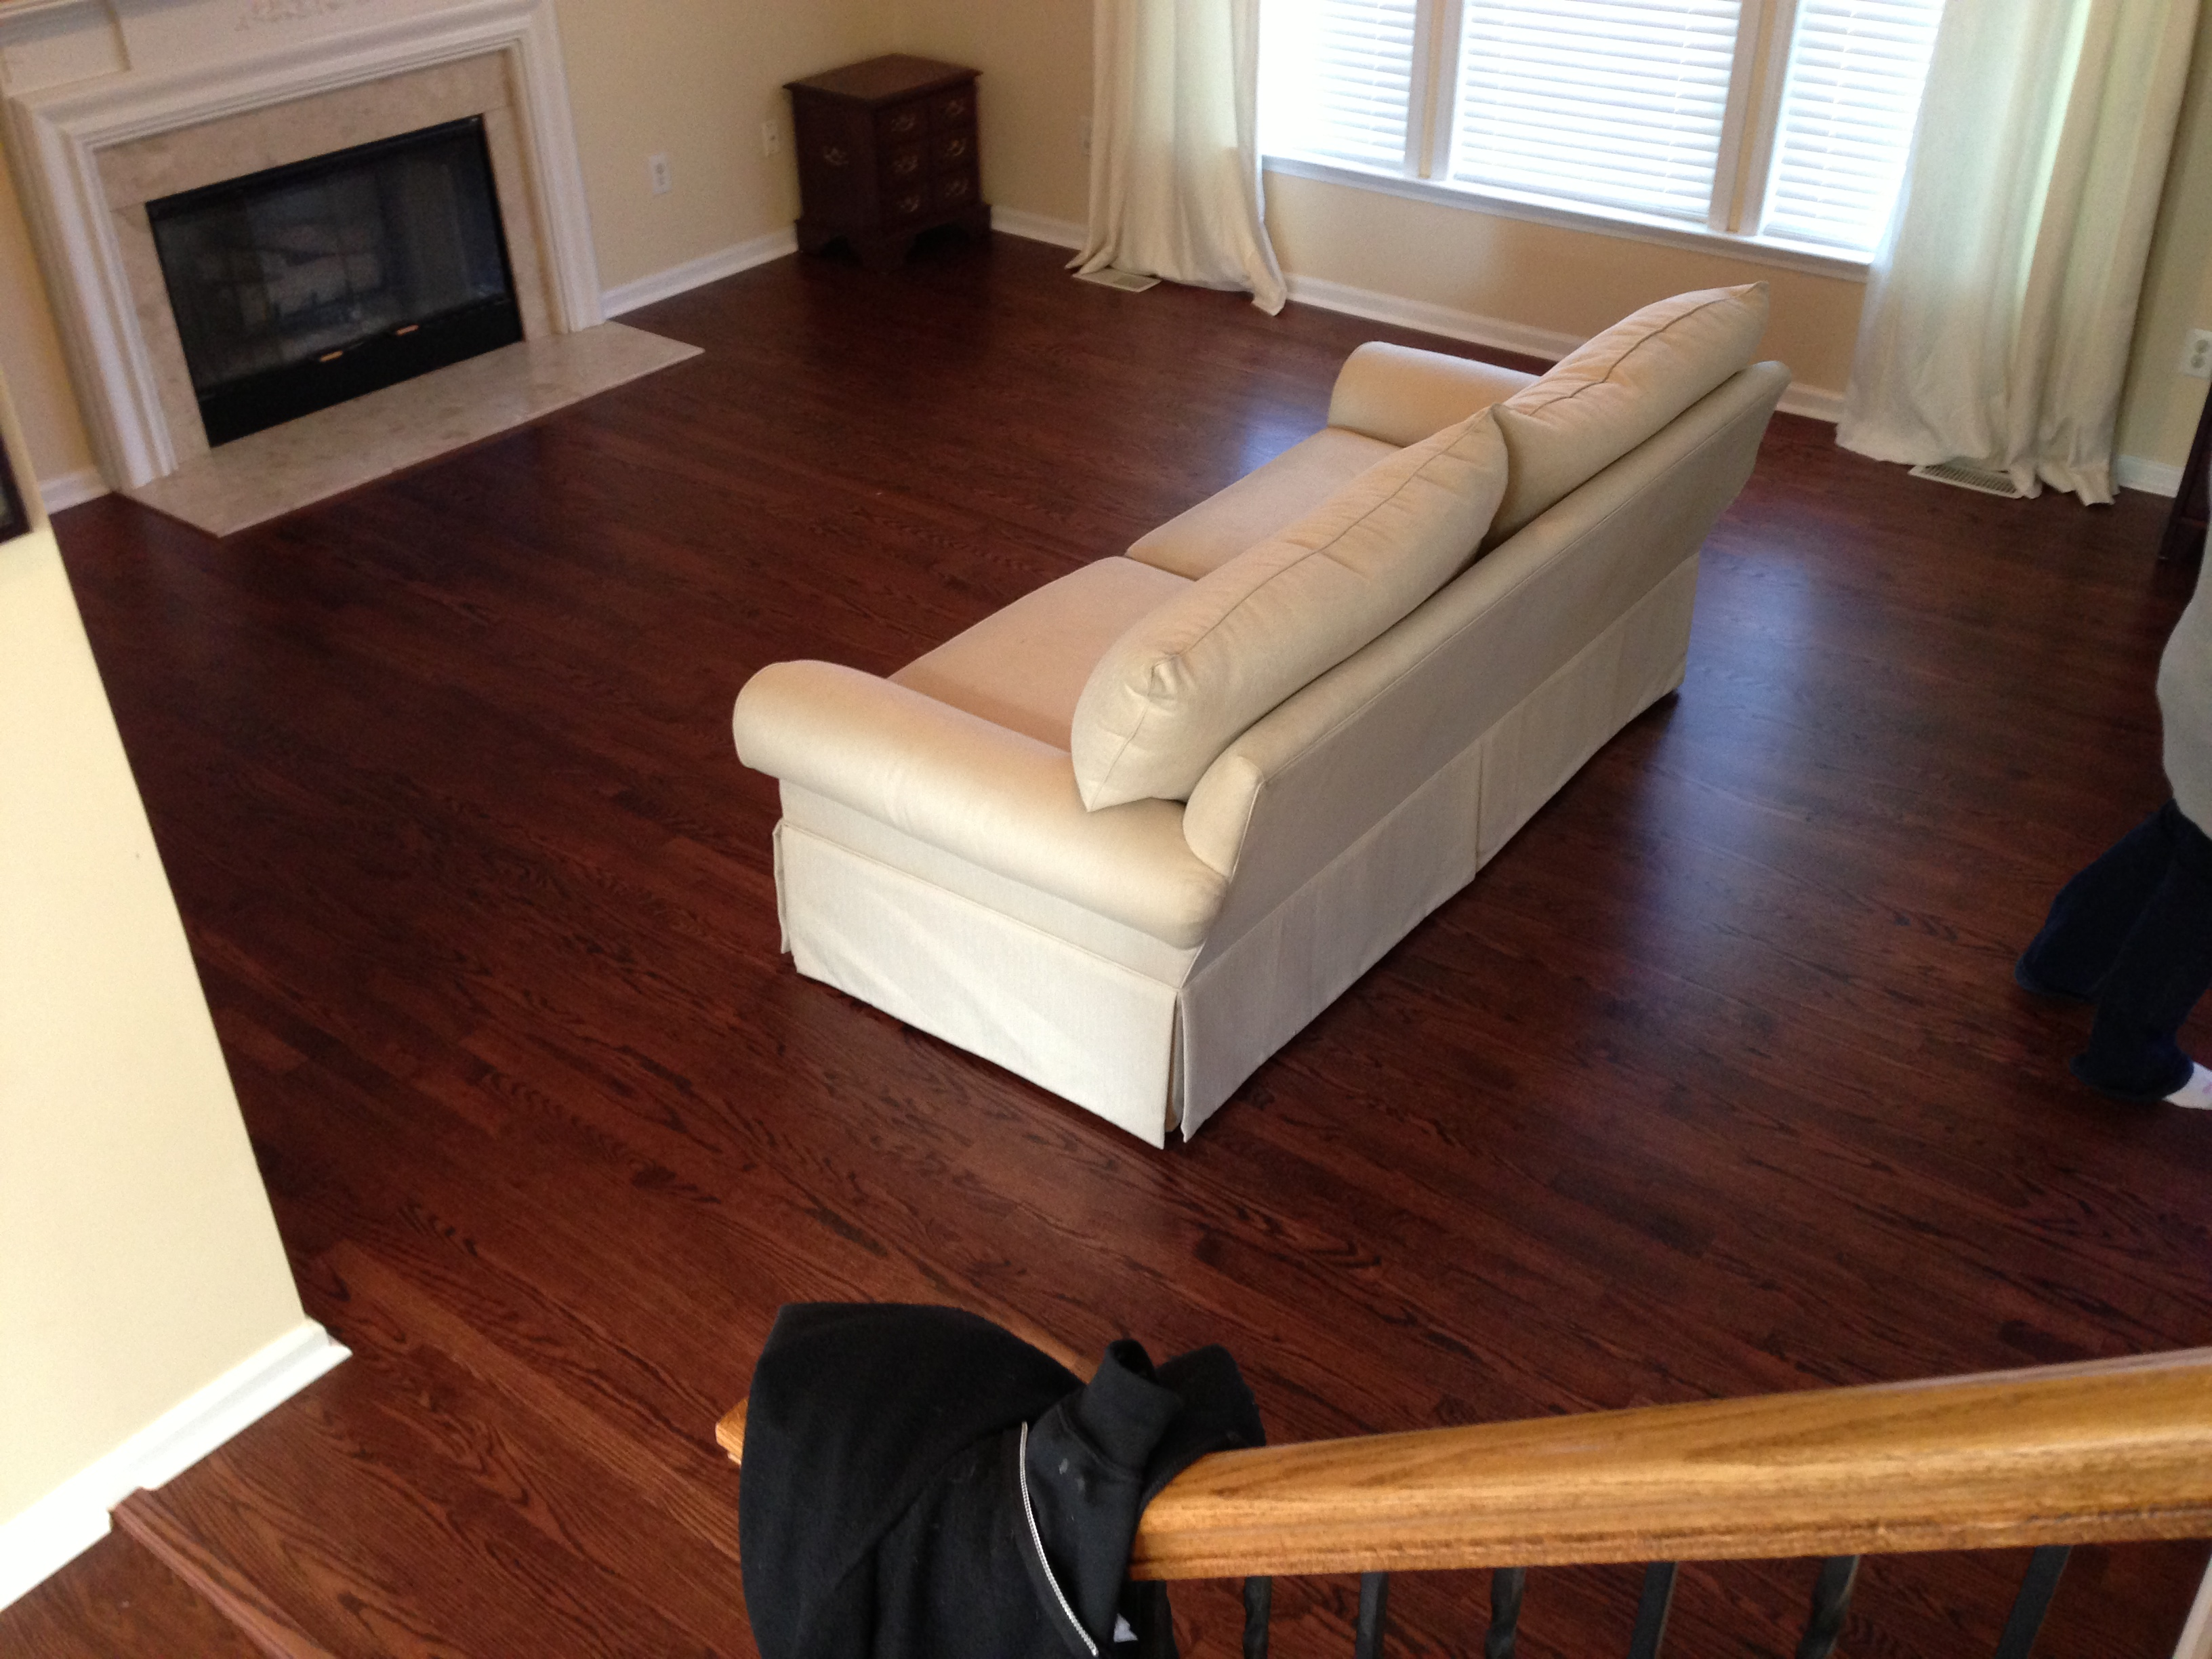 Best Rated Hardwood Flooring Company Raleigh NC,Hardwood Floor